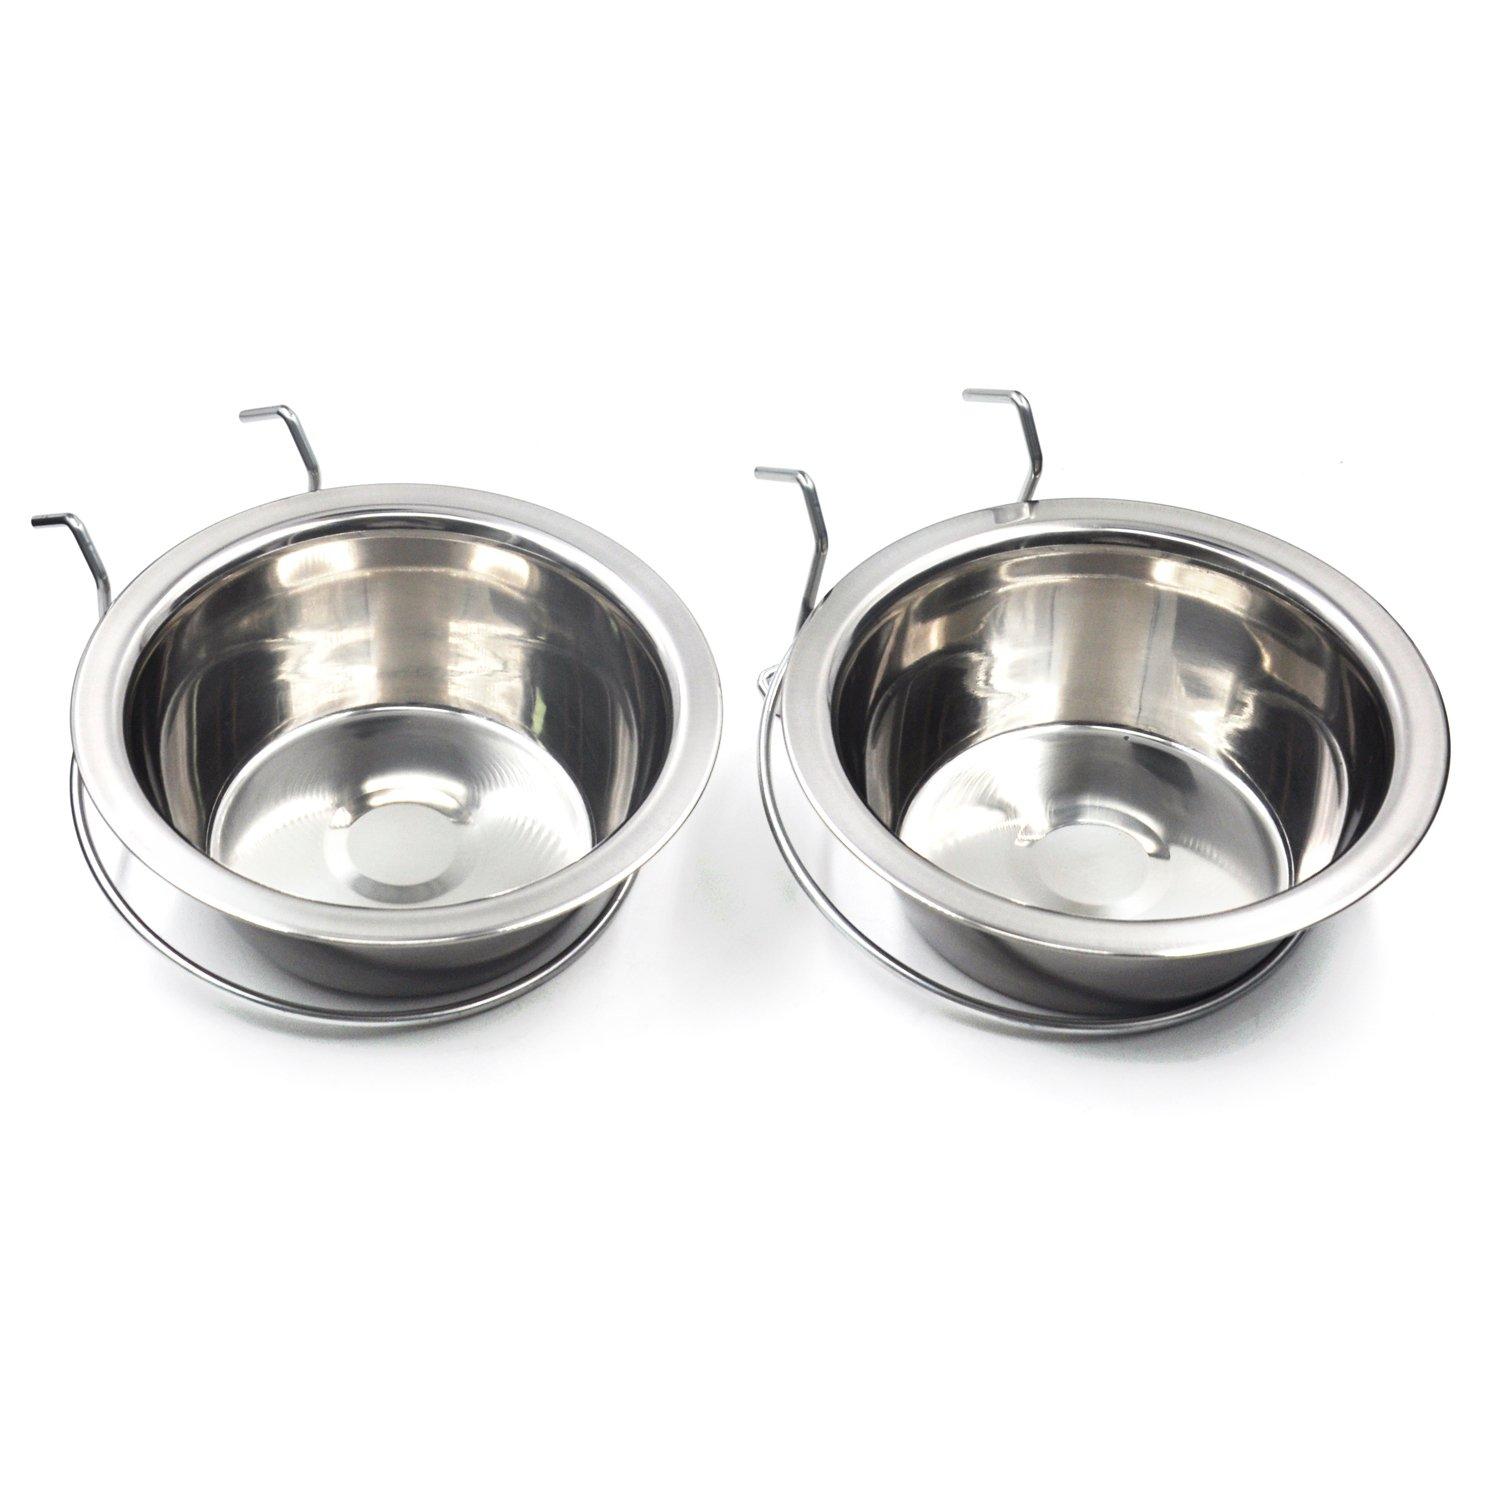 MLCINI Hanging Pet Bowl, Stainless Steel Food Water Bowls Bunny Feeder with Hook for Dogs Cats in Crate Cage Kennel-(L) 21oz/2 Pack